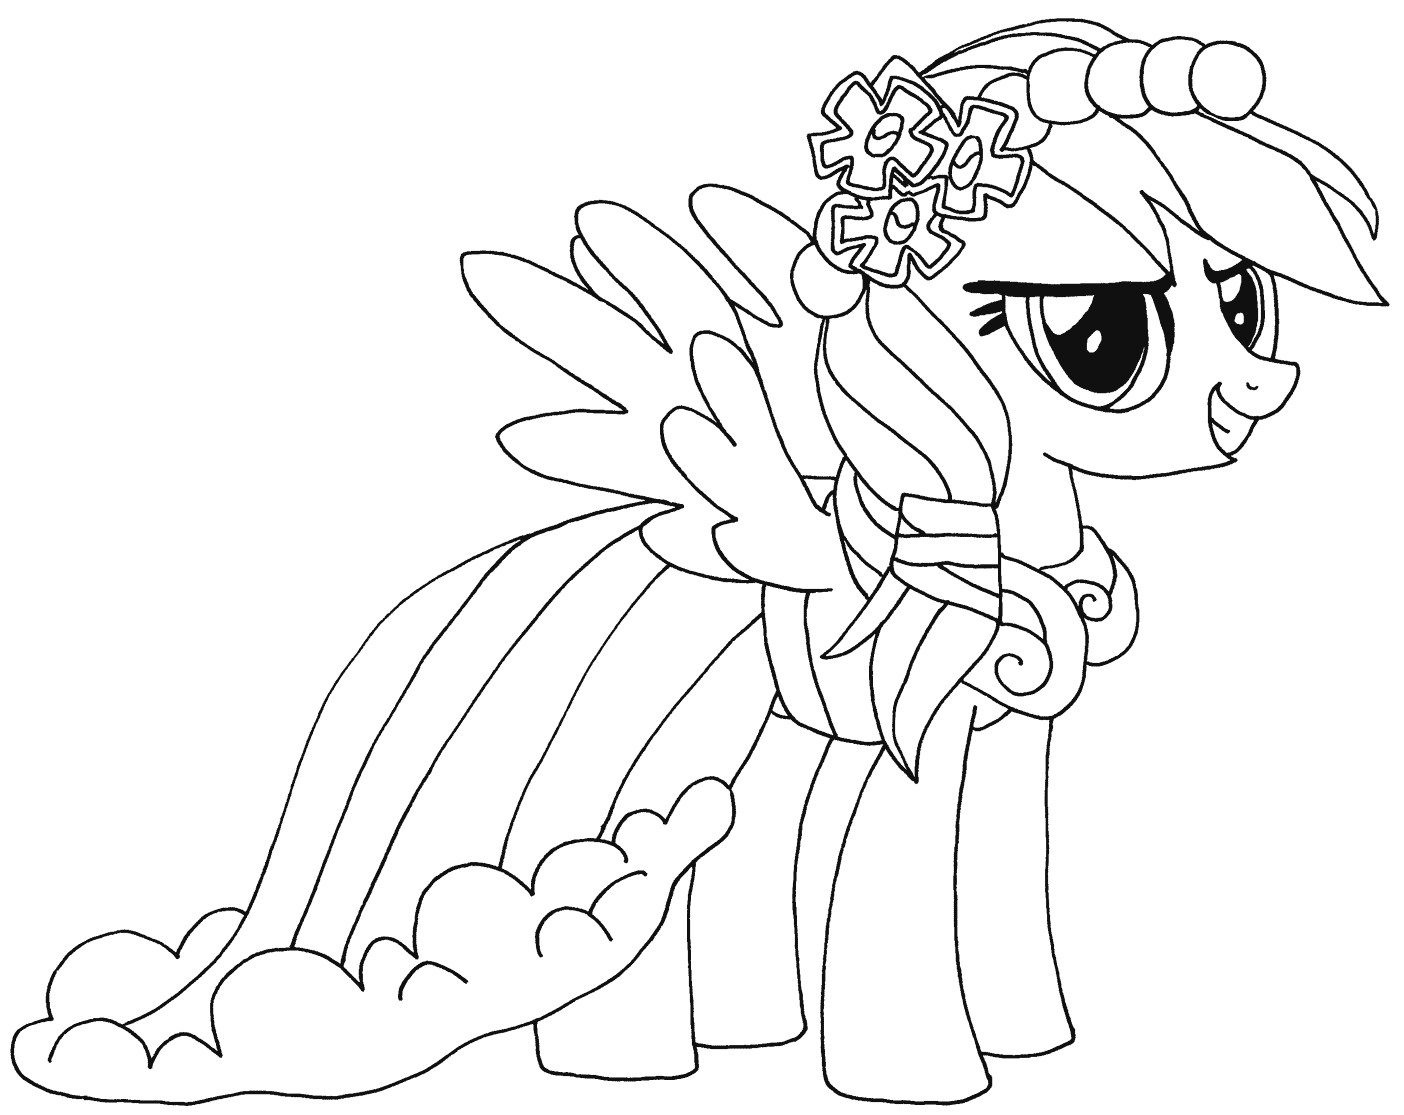 coloring pages 9 year old 9 year old girl coloring page pepper mintz get coloring coloring old year pages 9